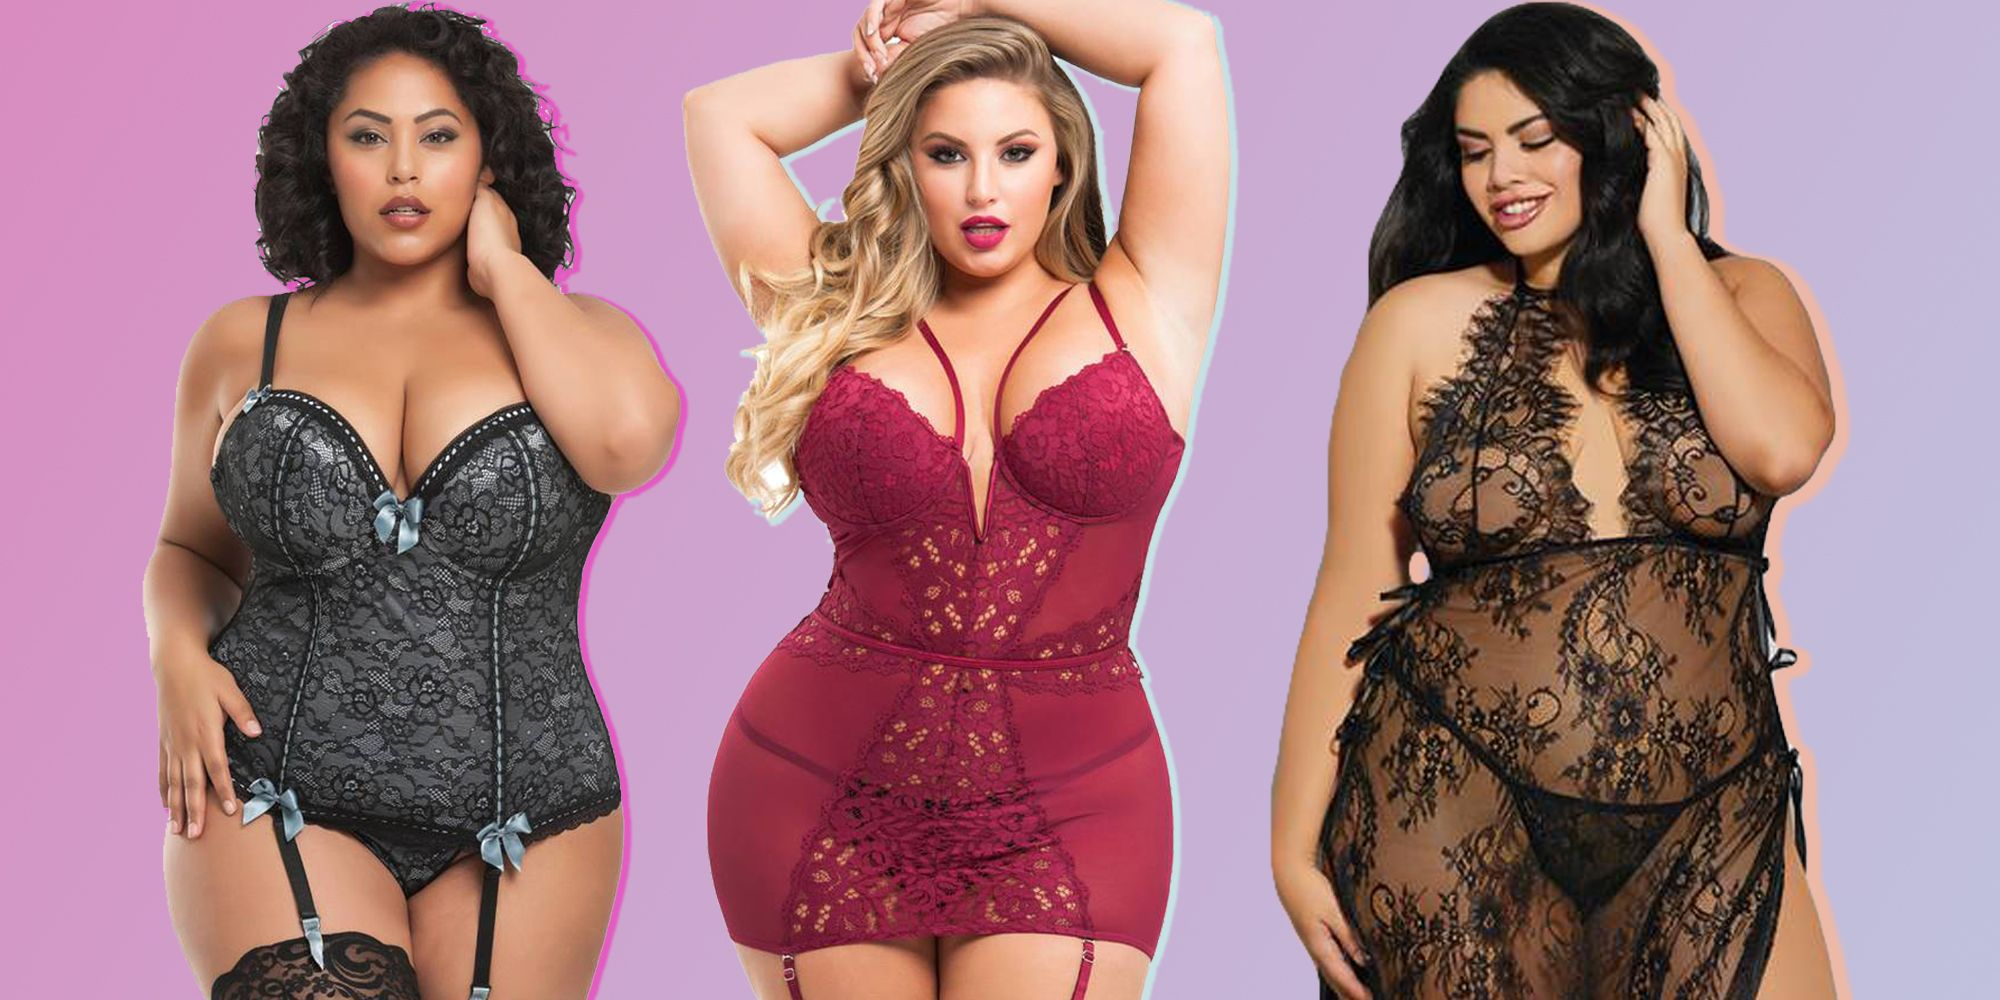 c4b562e70e67 19 sexy plus-size lingerie sets for when you're really feeling yourself